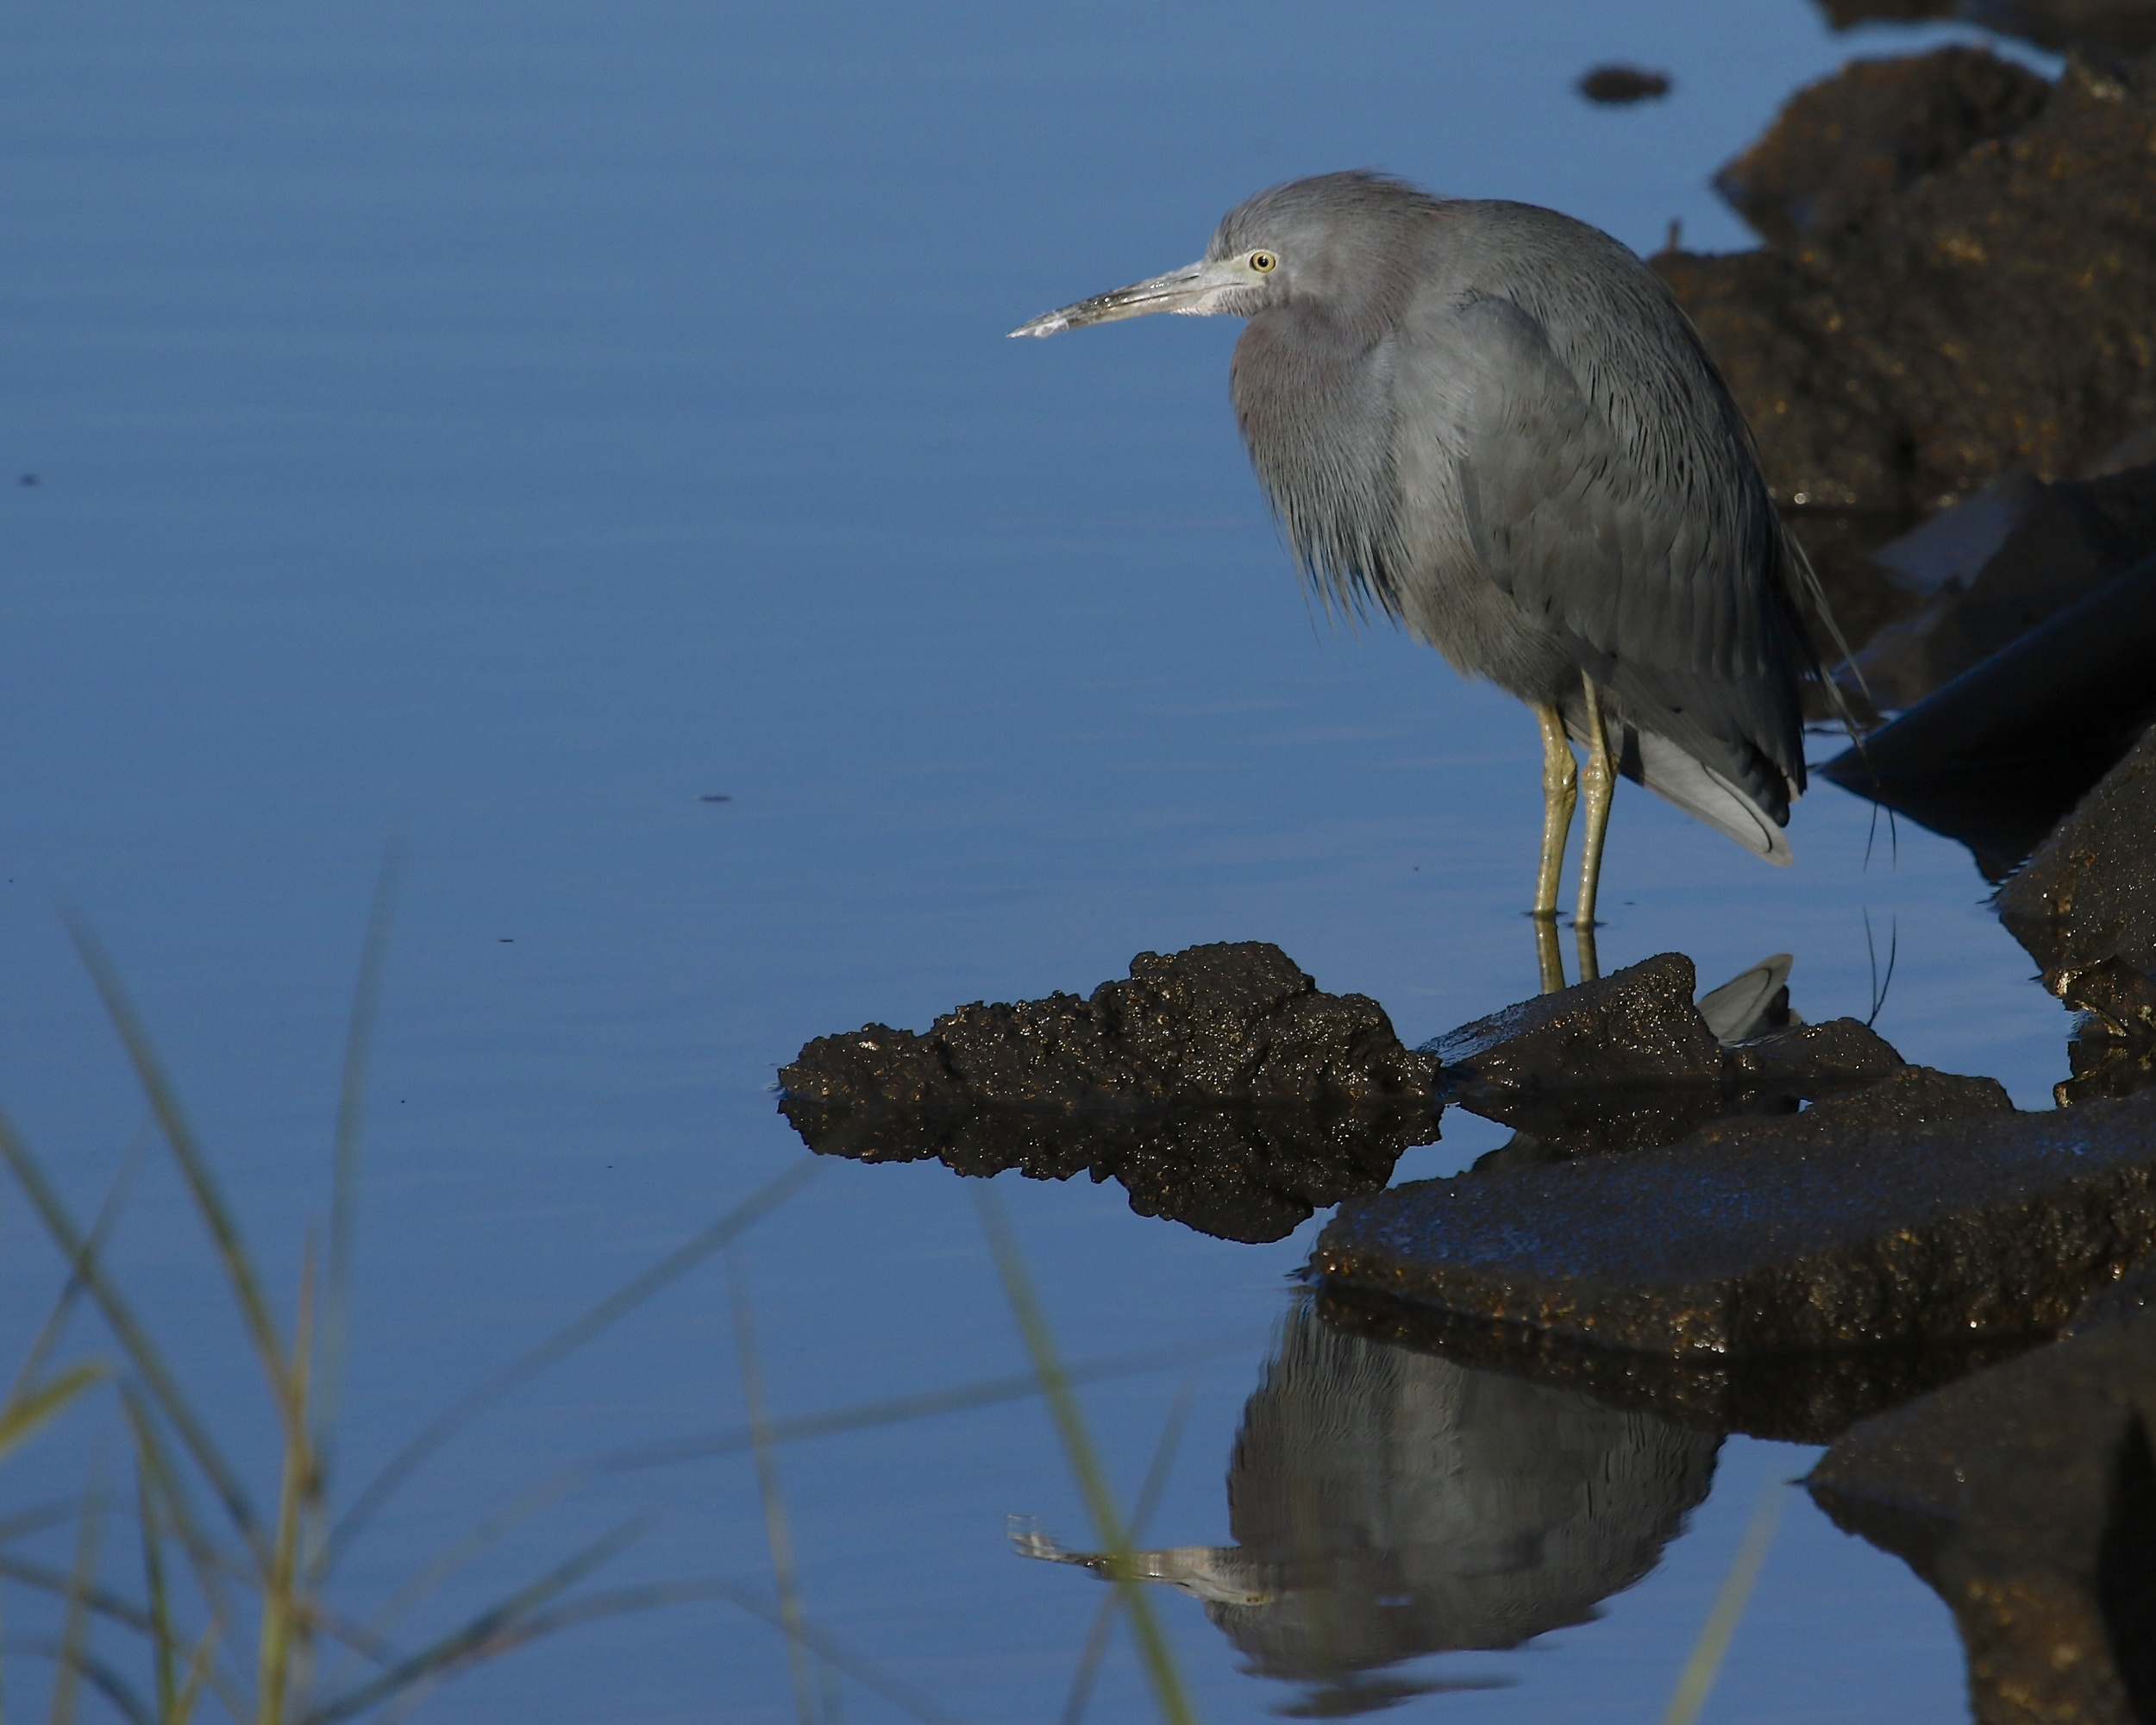 Meet   Broward Bob  , the Little Blue Heron and official weather prognosticator for the Broward (not as well known perhaps as   Punxsutawney Phil   but easier to spell).